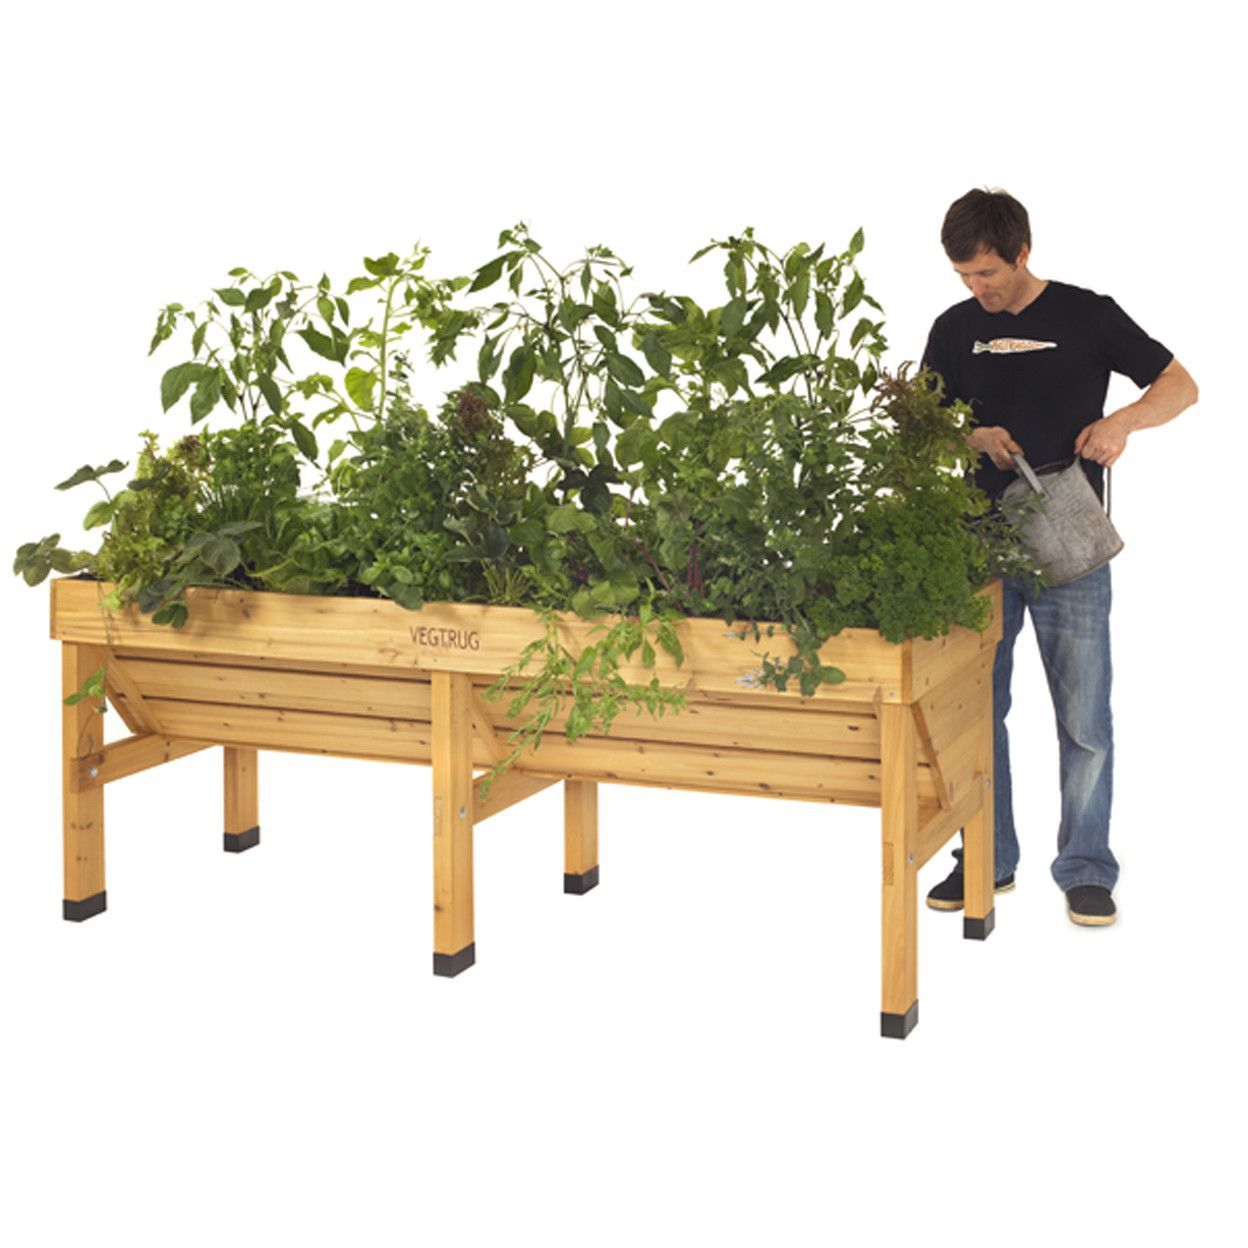 Veg Trug Raised Bed Planter Elevated Garden Beds Garden Beds Raised Planter Beds